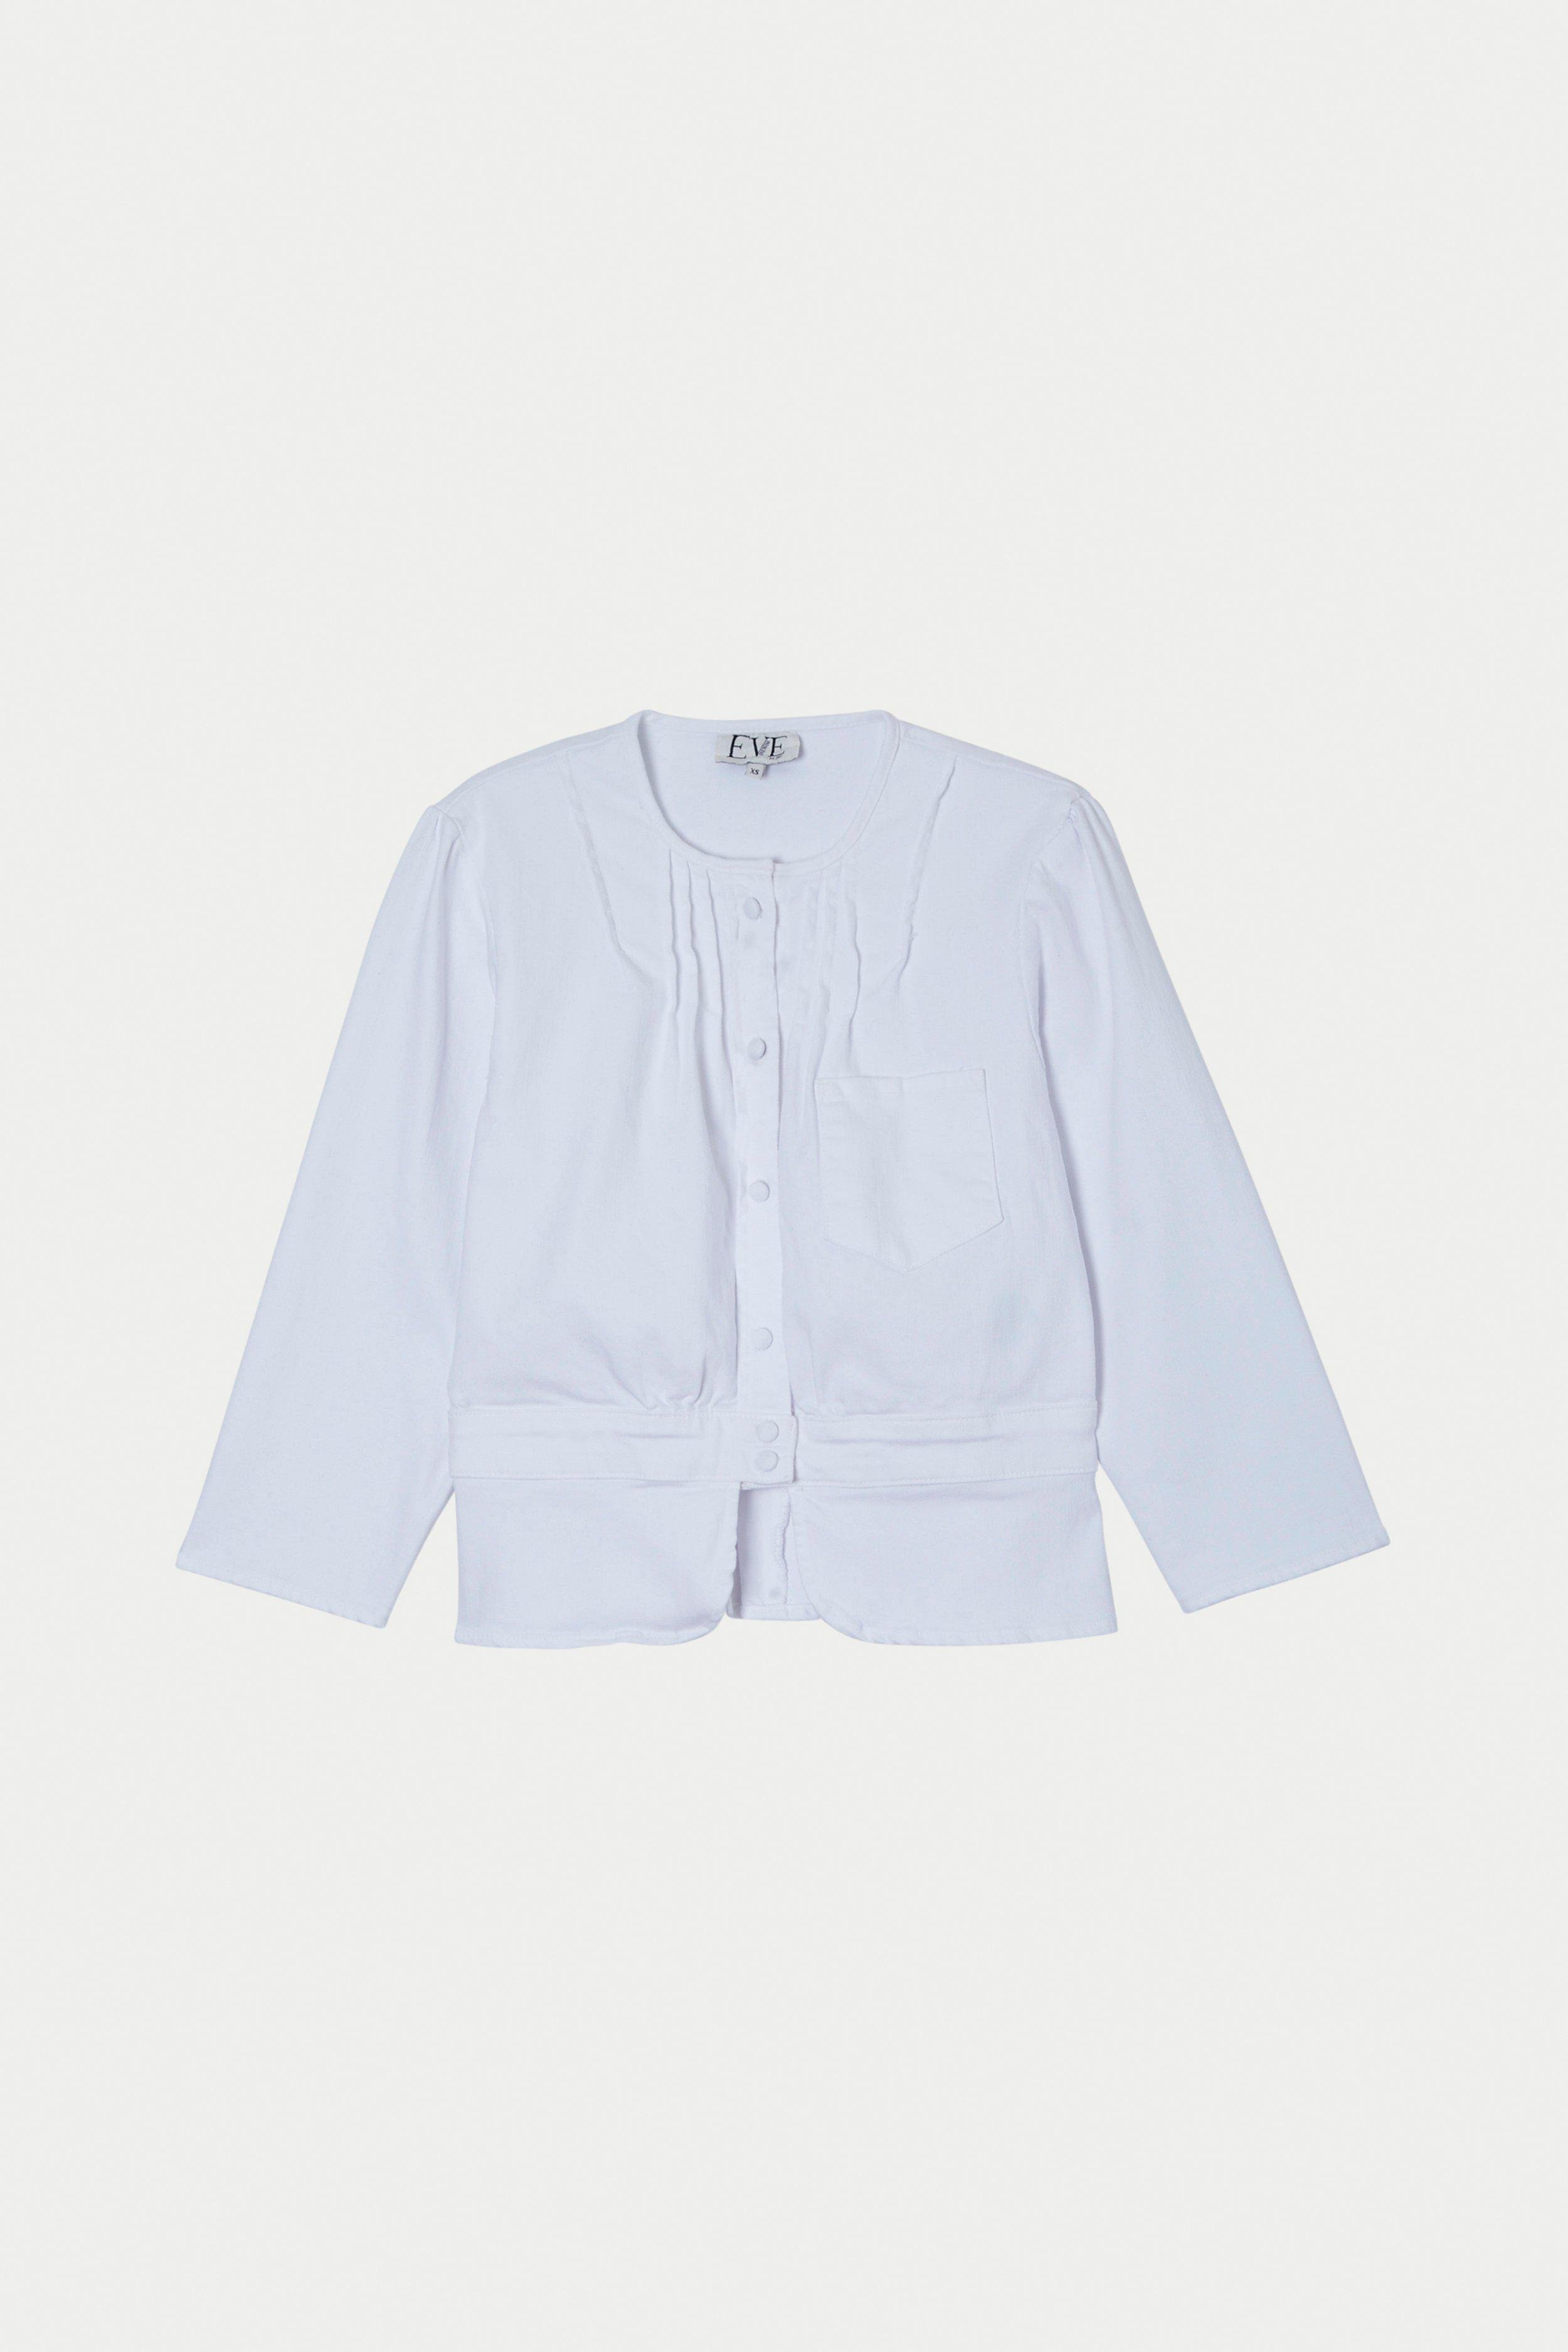 Prudence Jacket in Blanc 2